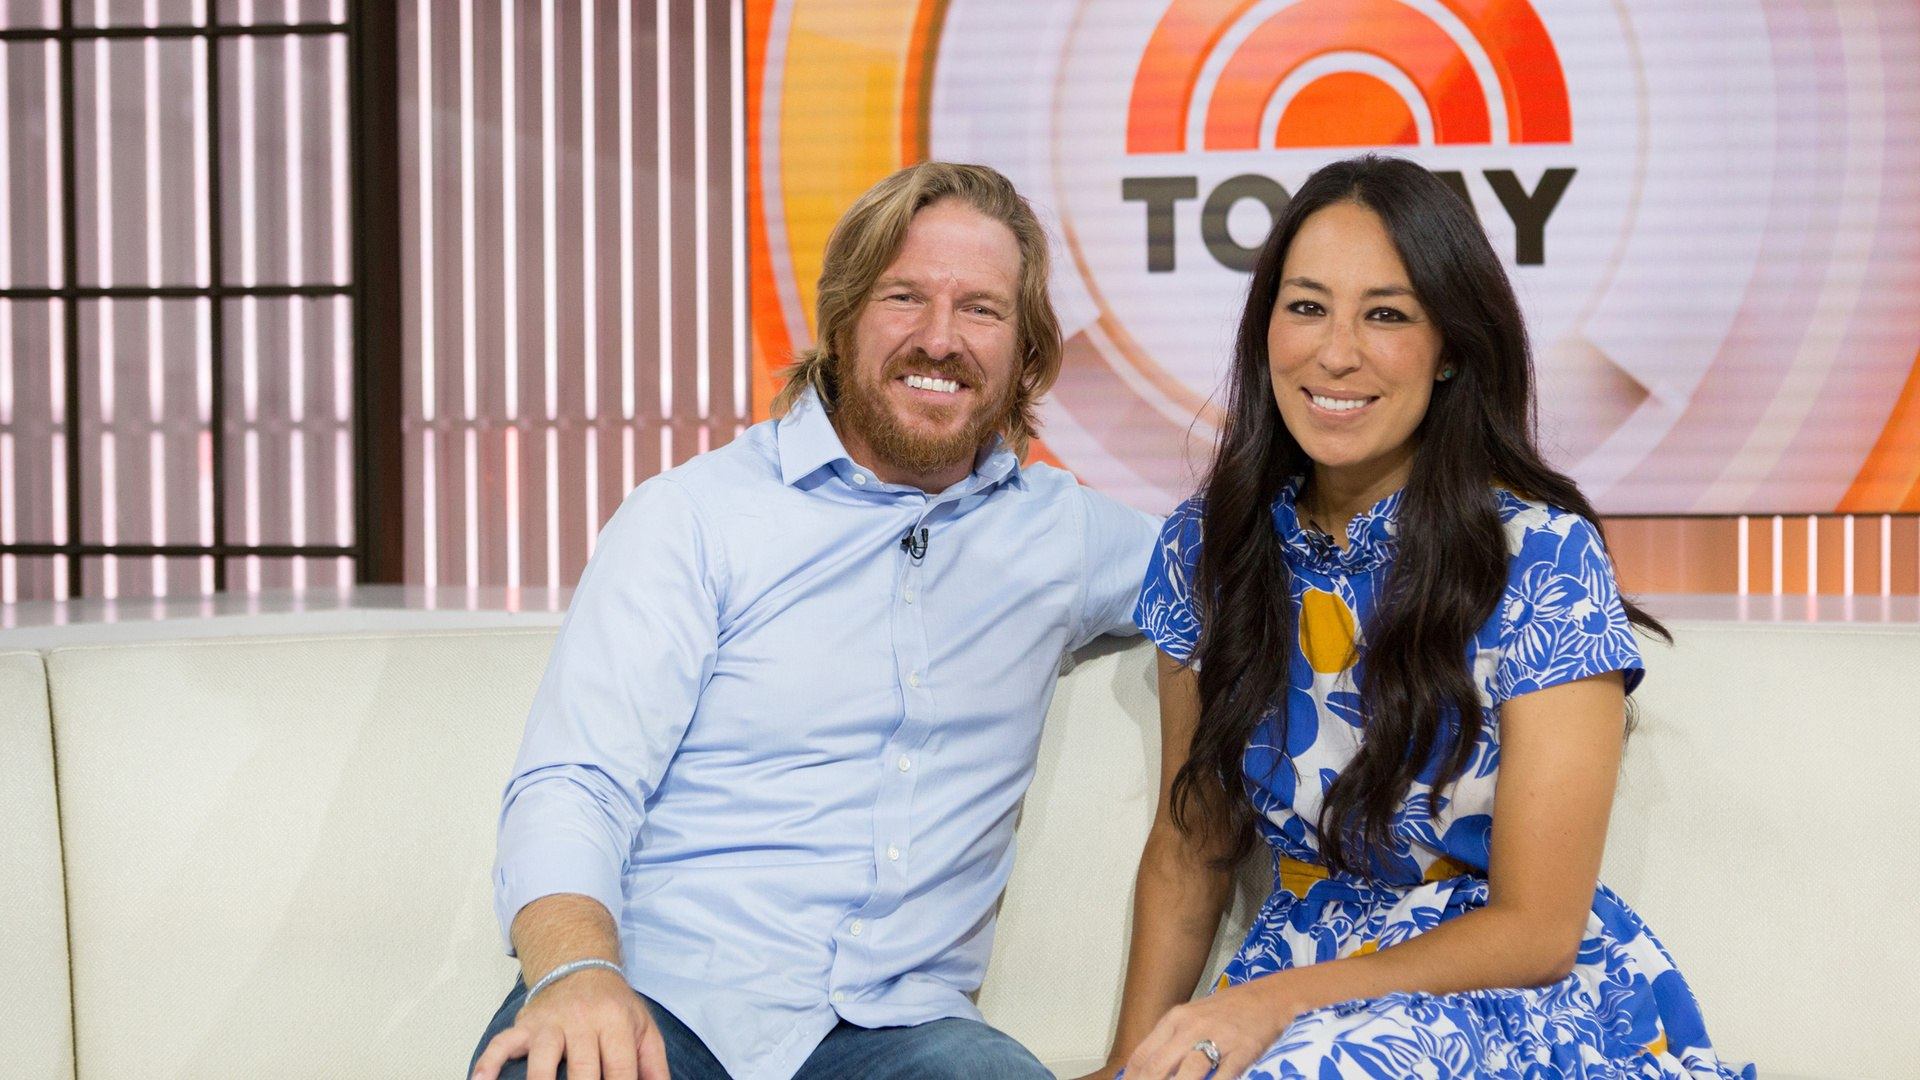 It's Official: Chip and Joanna Gaines Will Say Goodbye to the Show That Made Them Famous